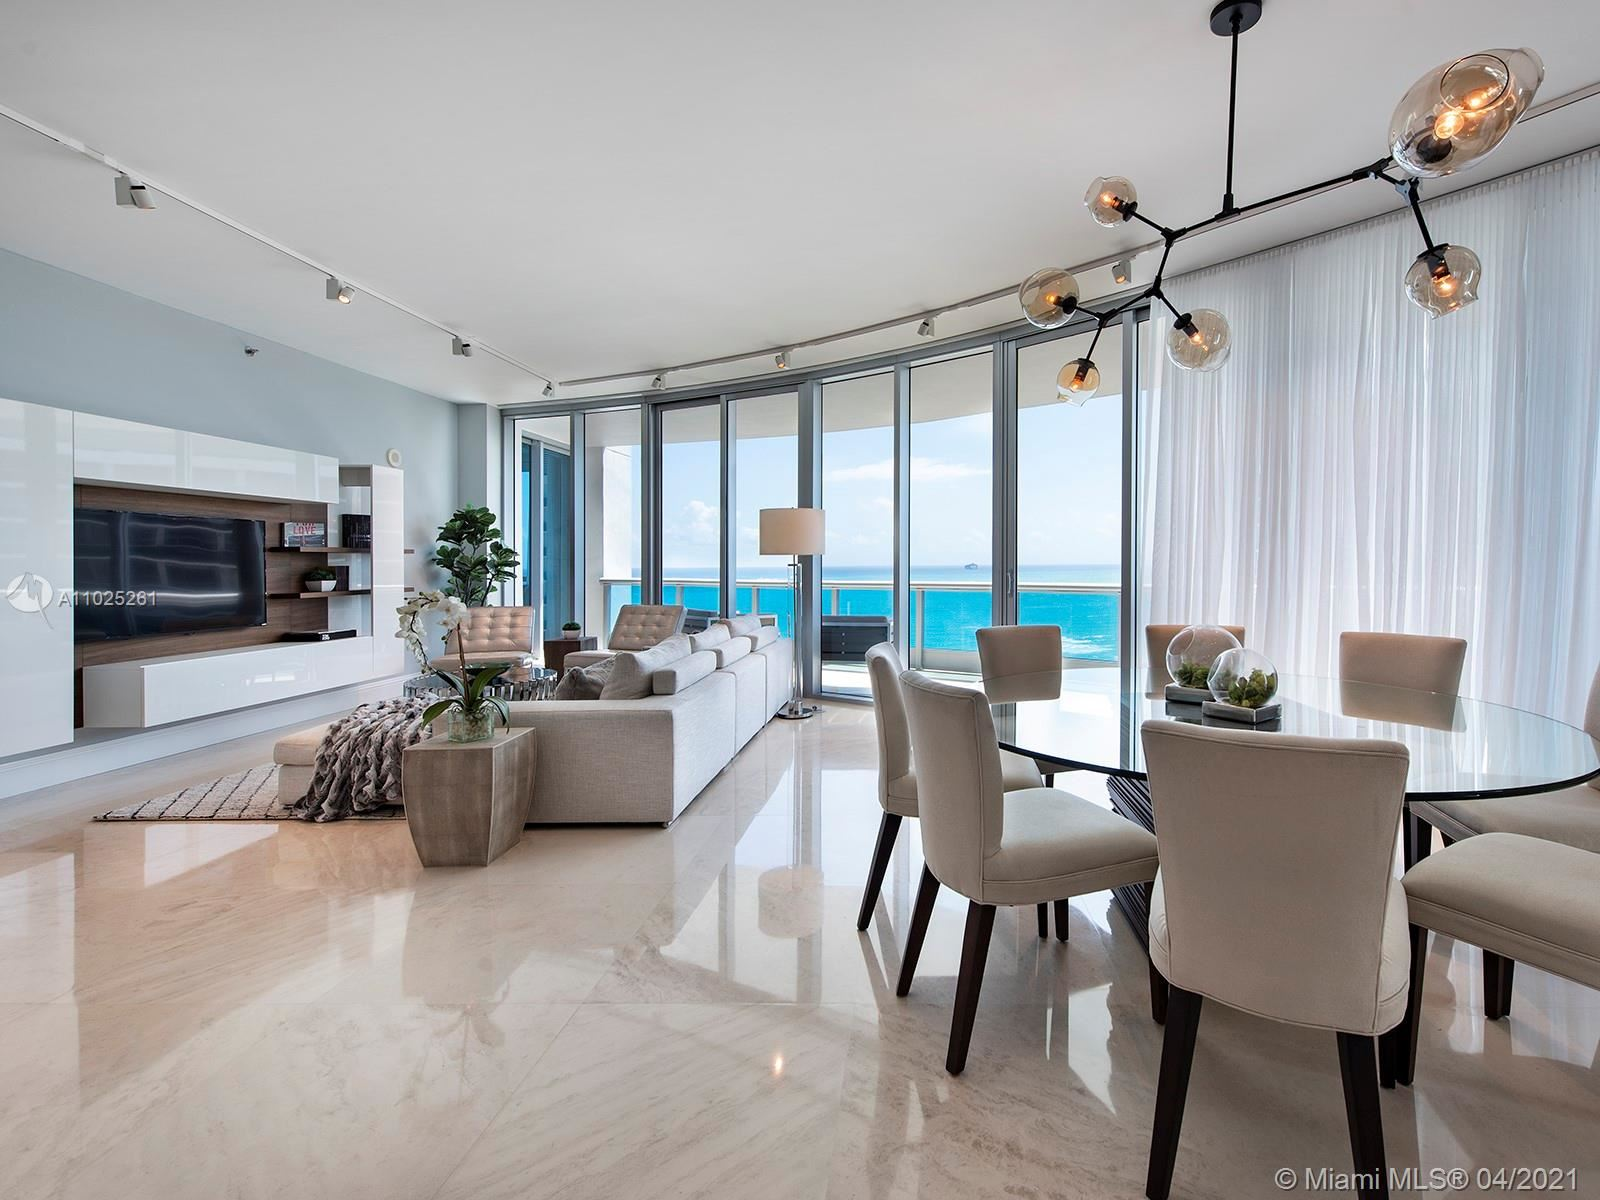 5959 Collins Ave #1802, Miami Beach, FL 33140 - #: A11025261